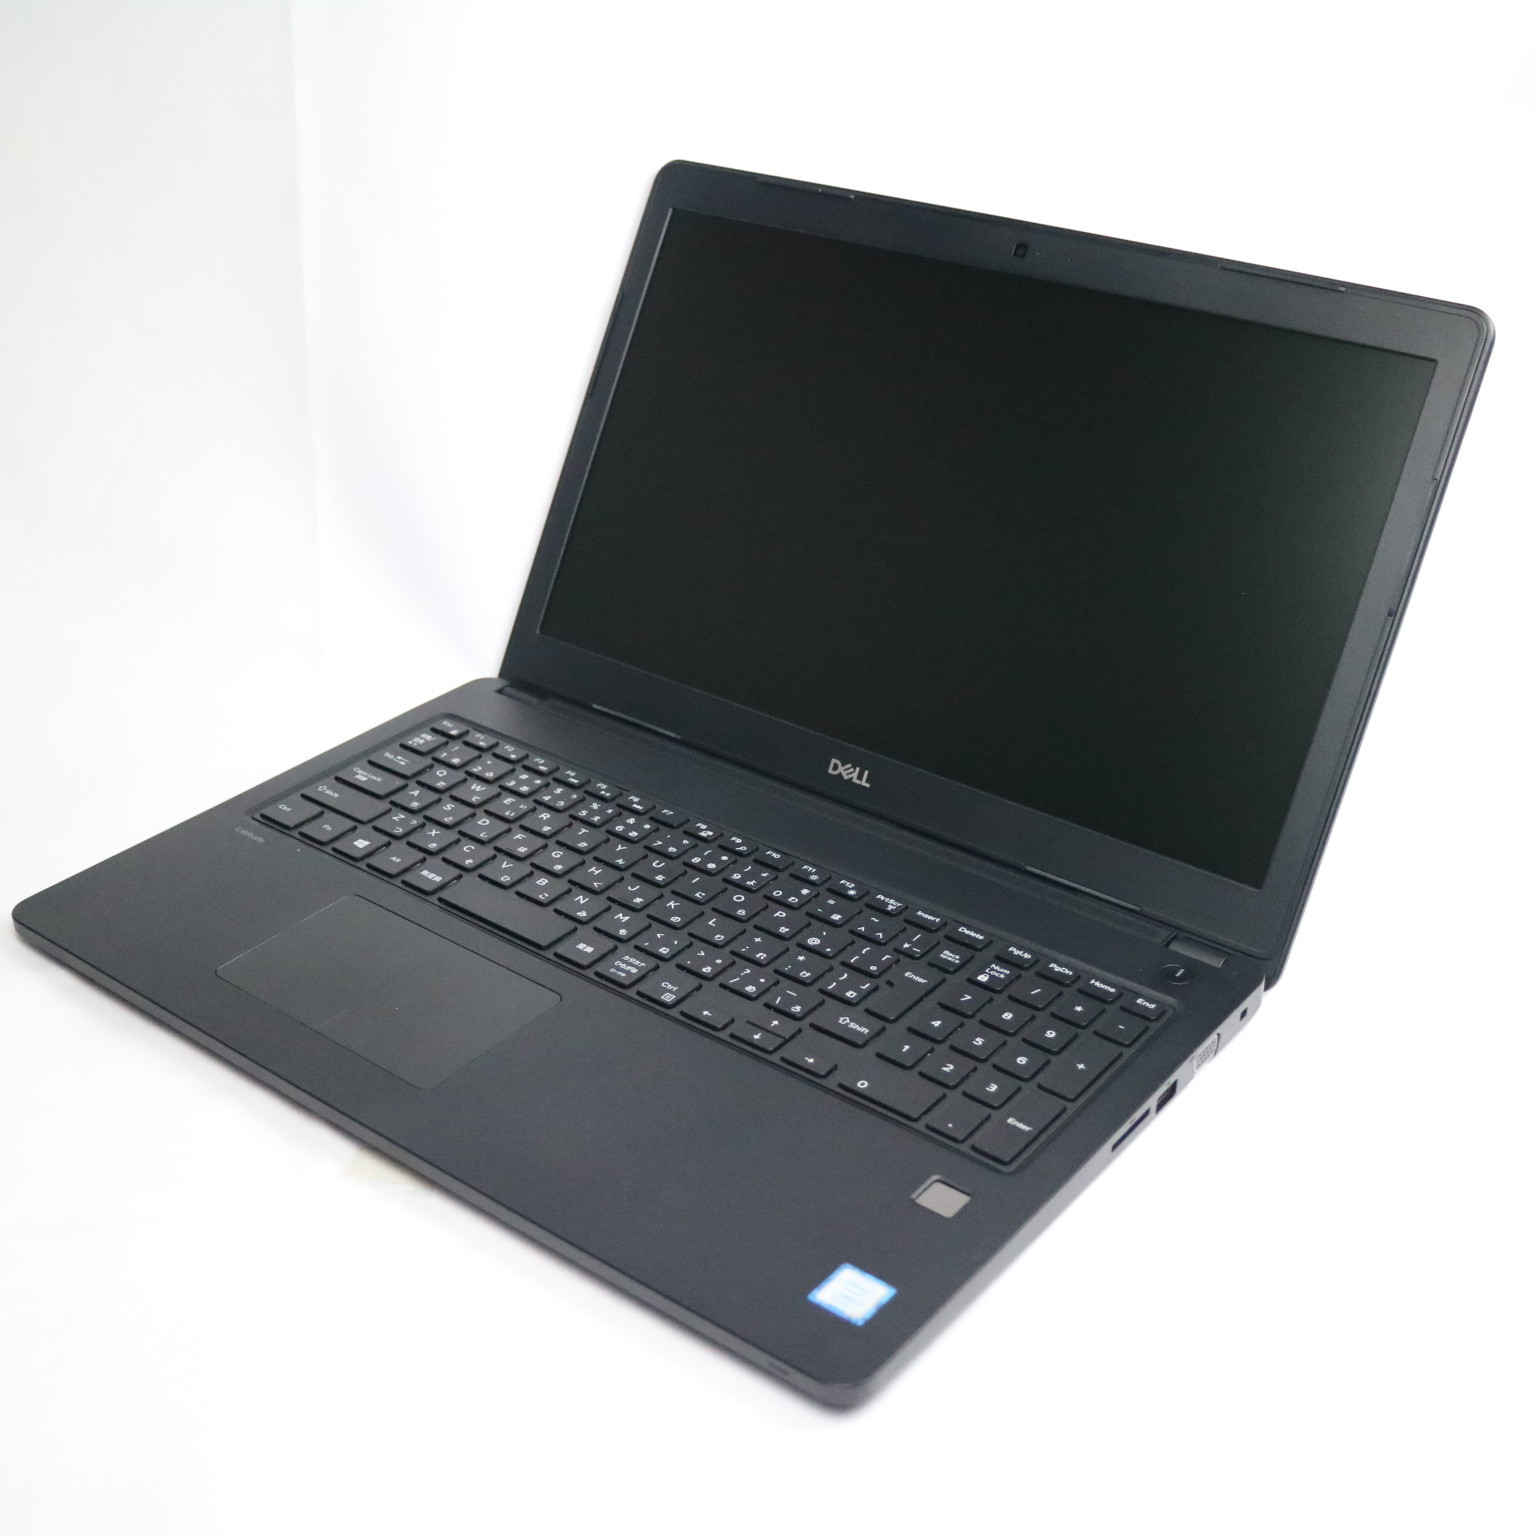 Latitude 3580/ 15.6インチ/ Core i5-7200U/ 2.5GHz/ 16GB/ HDD 500GB